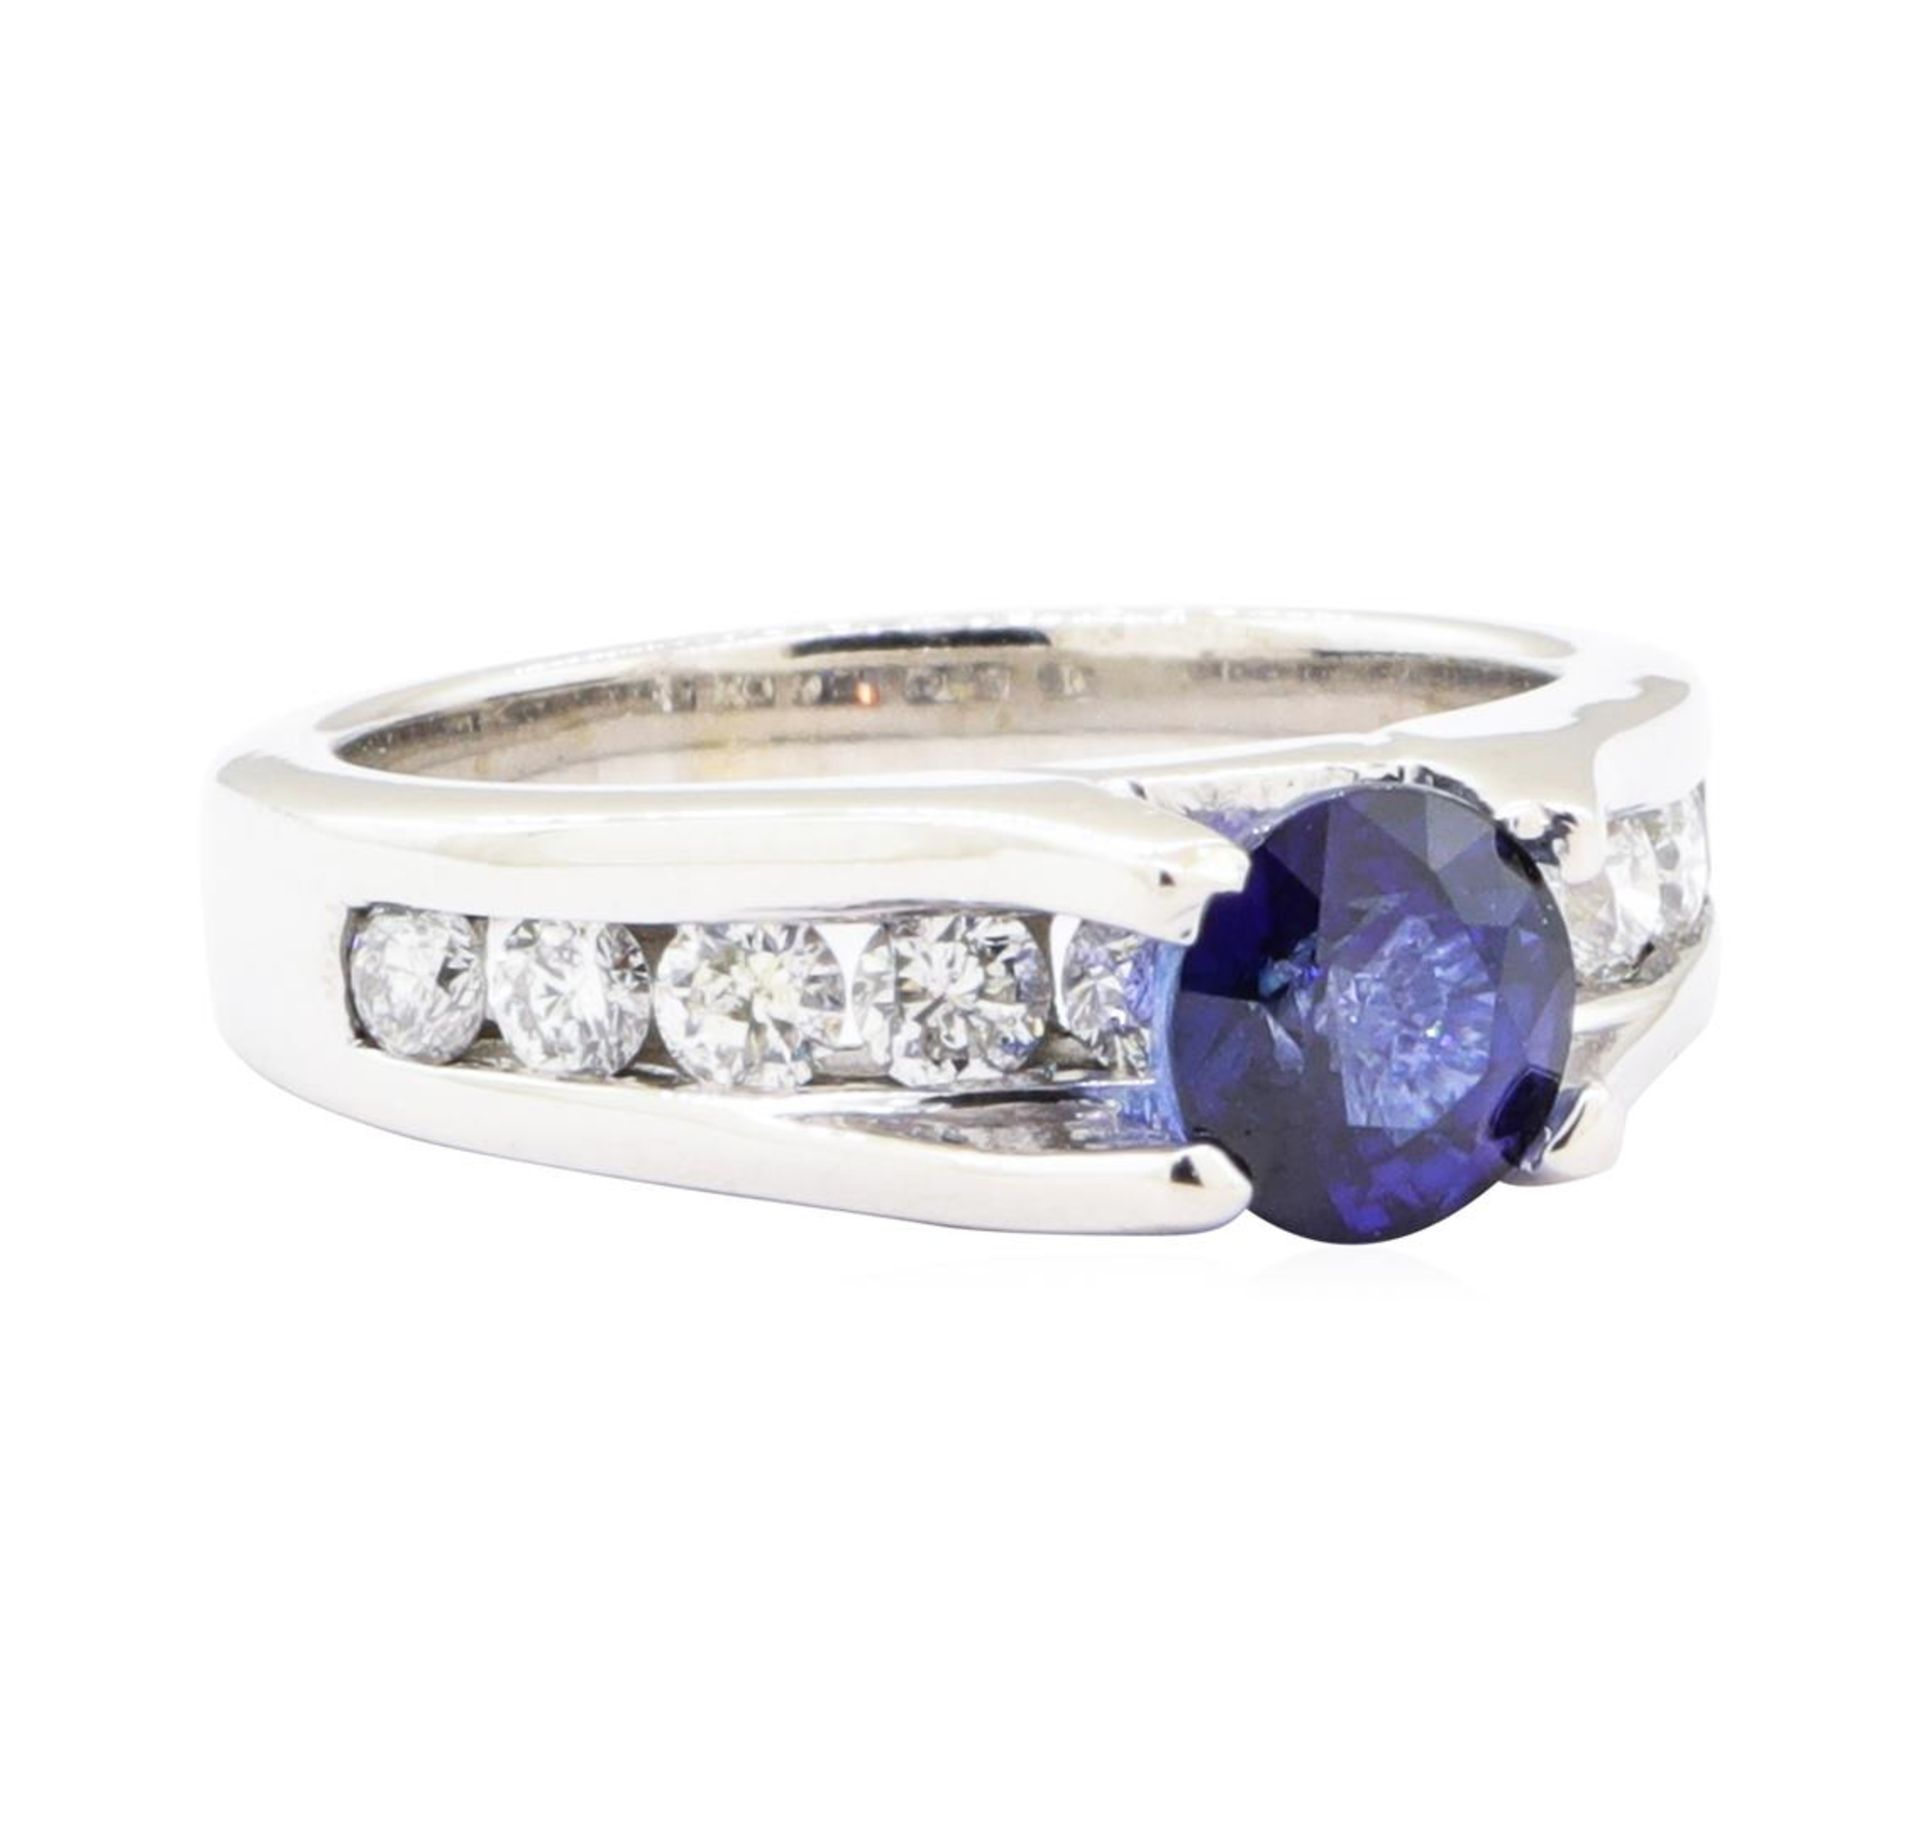 2.05ctw Sapphire and Diamond Ring - 14KT White Gold